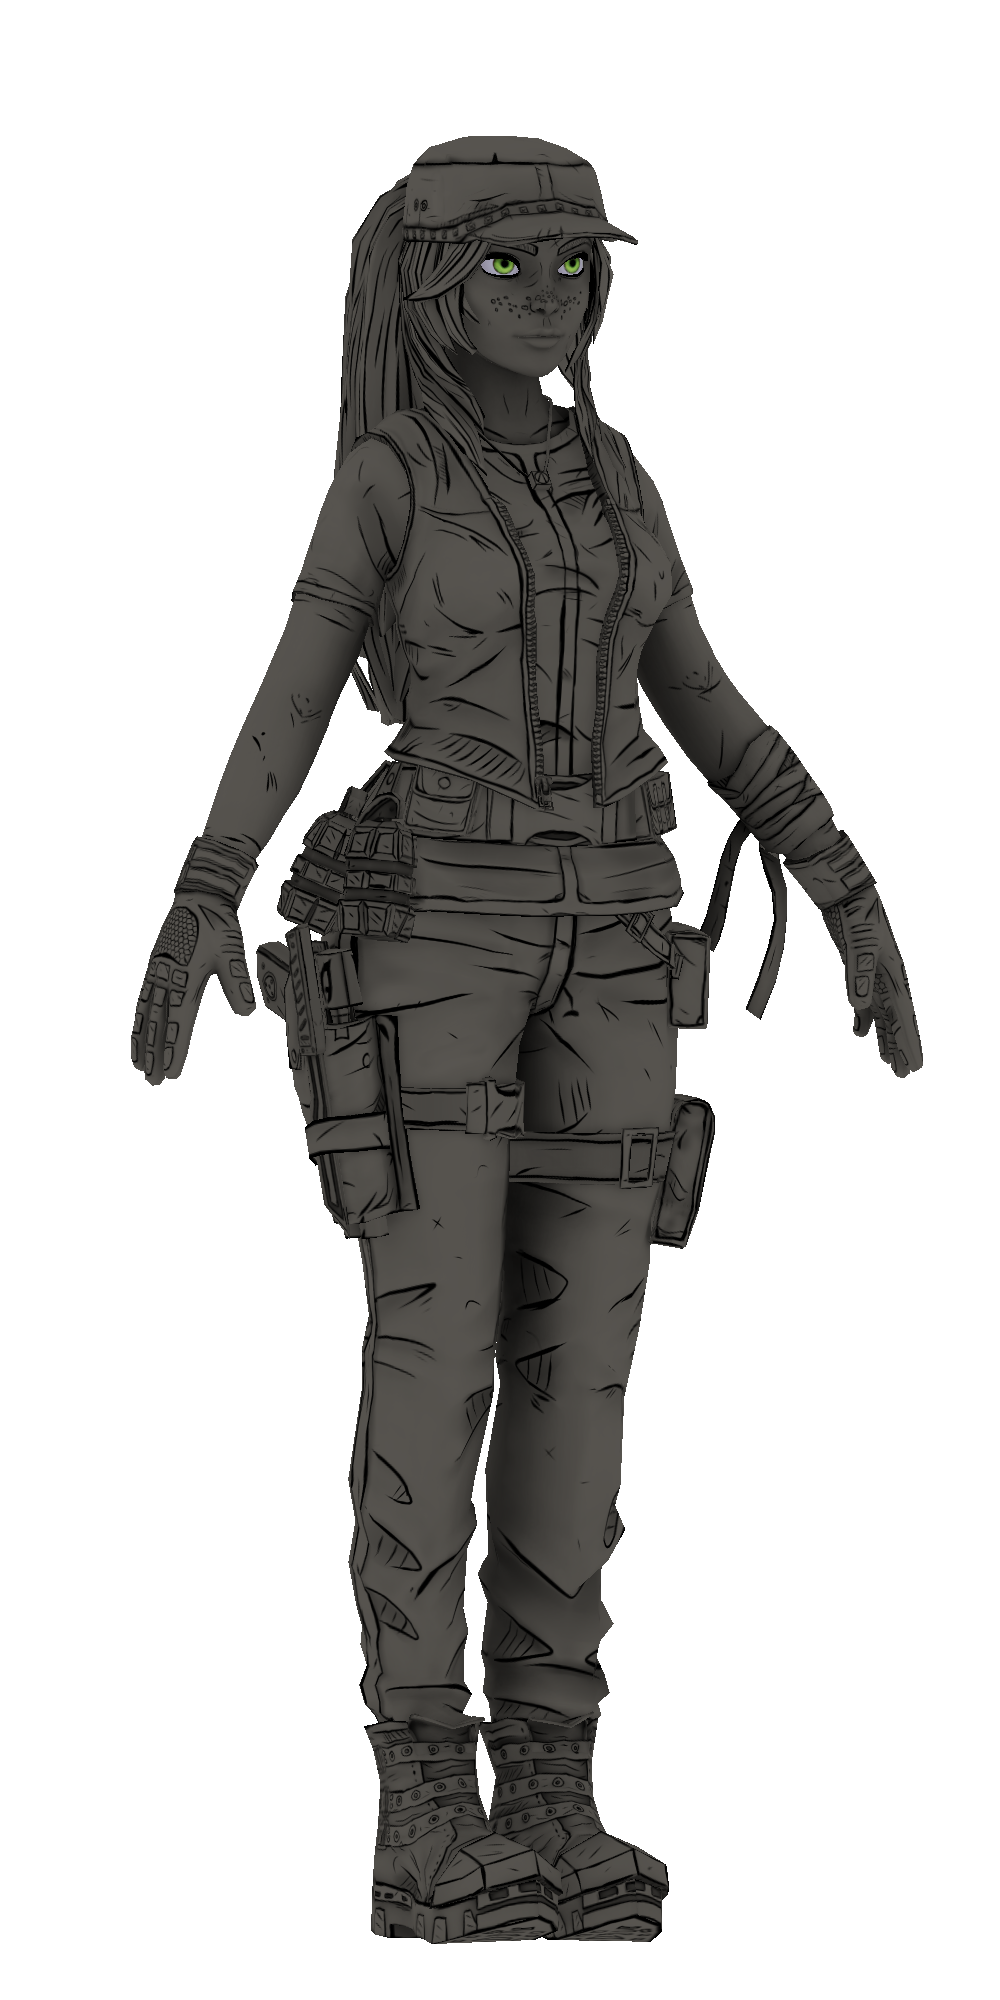 wip_char1_lines_by_bosman697-d92ml0y.png